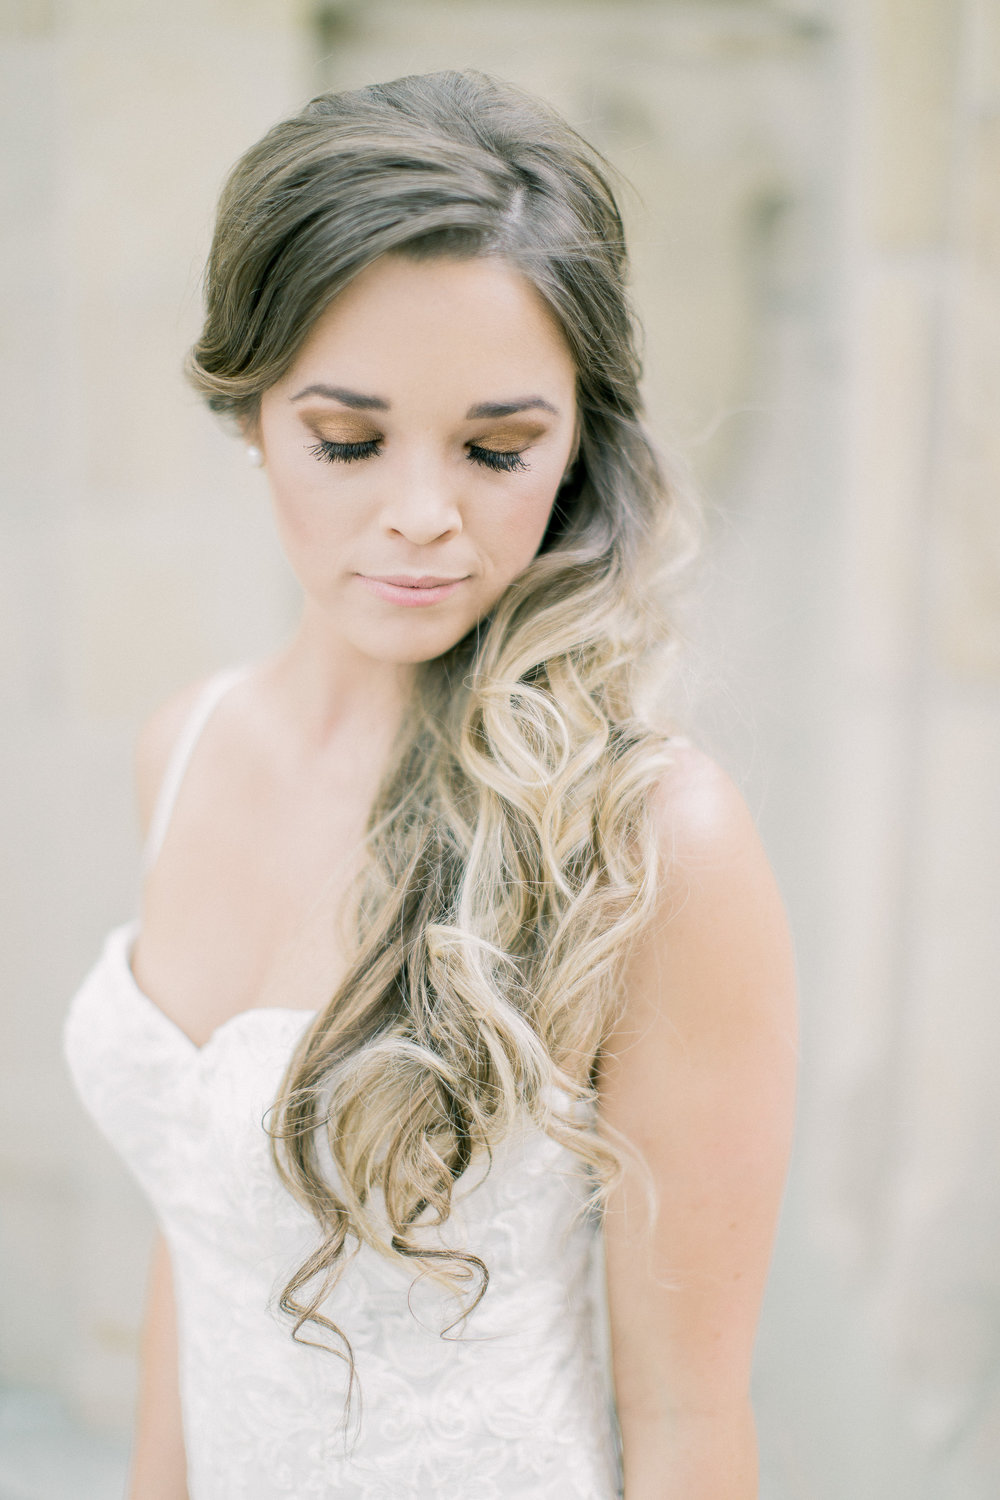 South africa wedding photographer clareece smit photography19.jpg